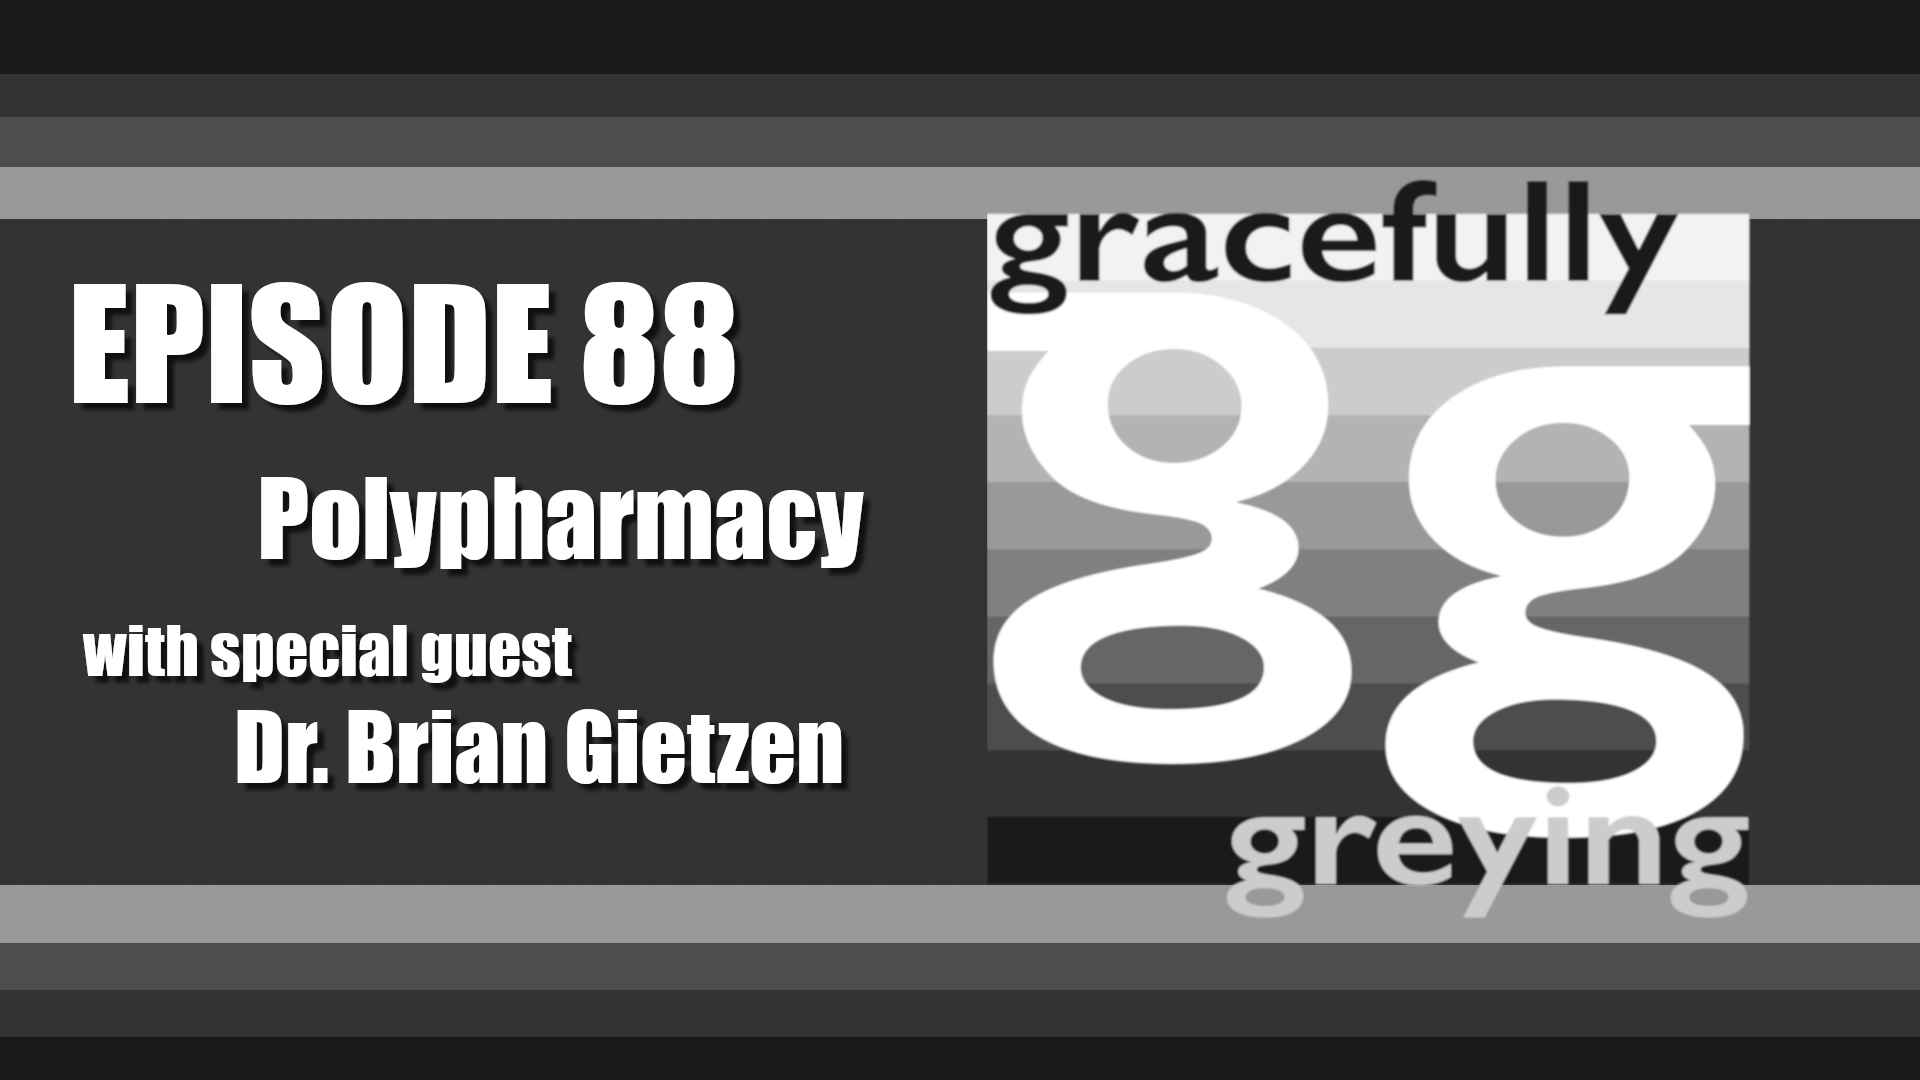 Gracefully Greying - Episode 88